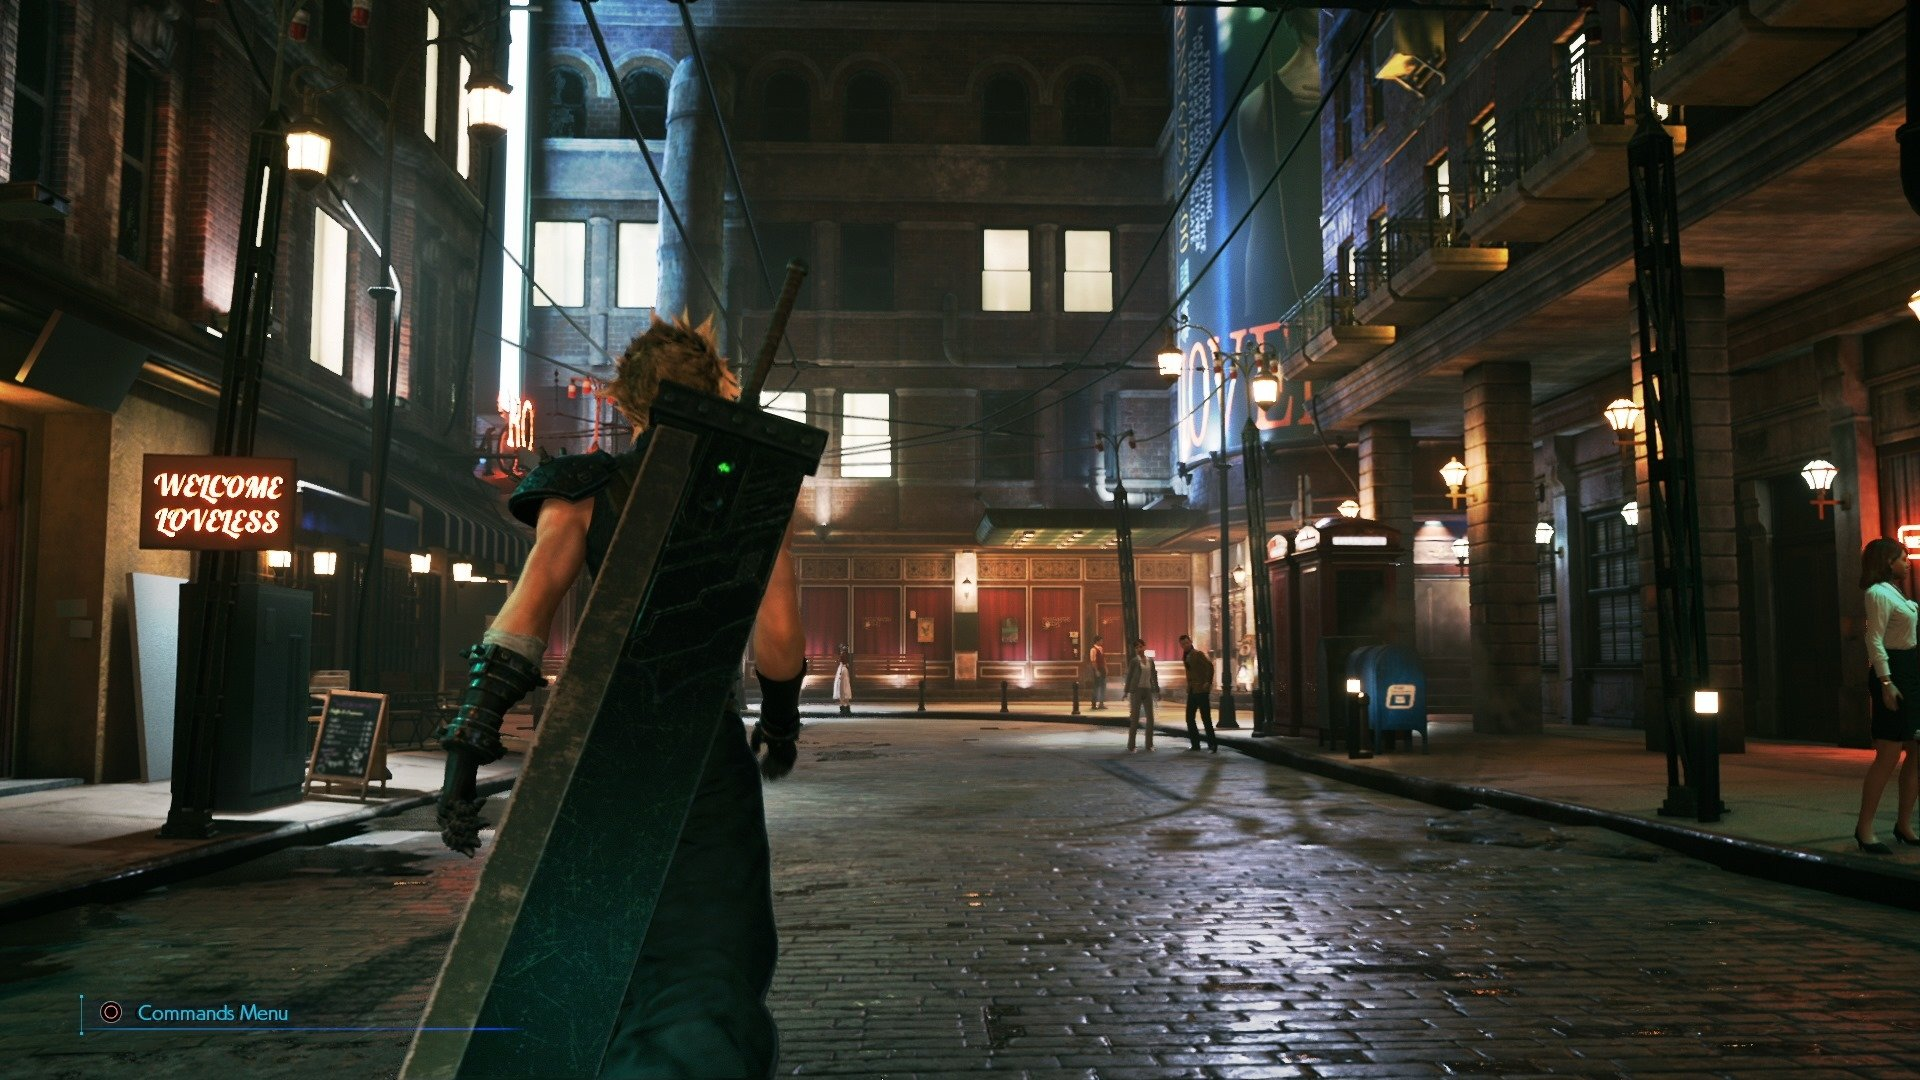 Final Fantasy Vii Remake Hd Wallpaper Background Image